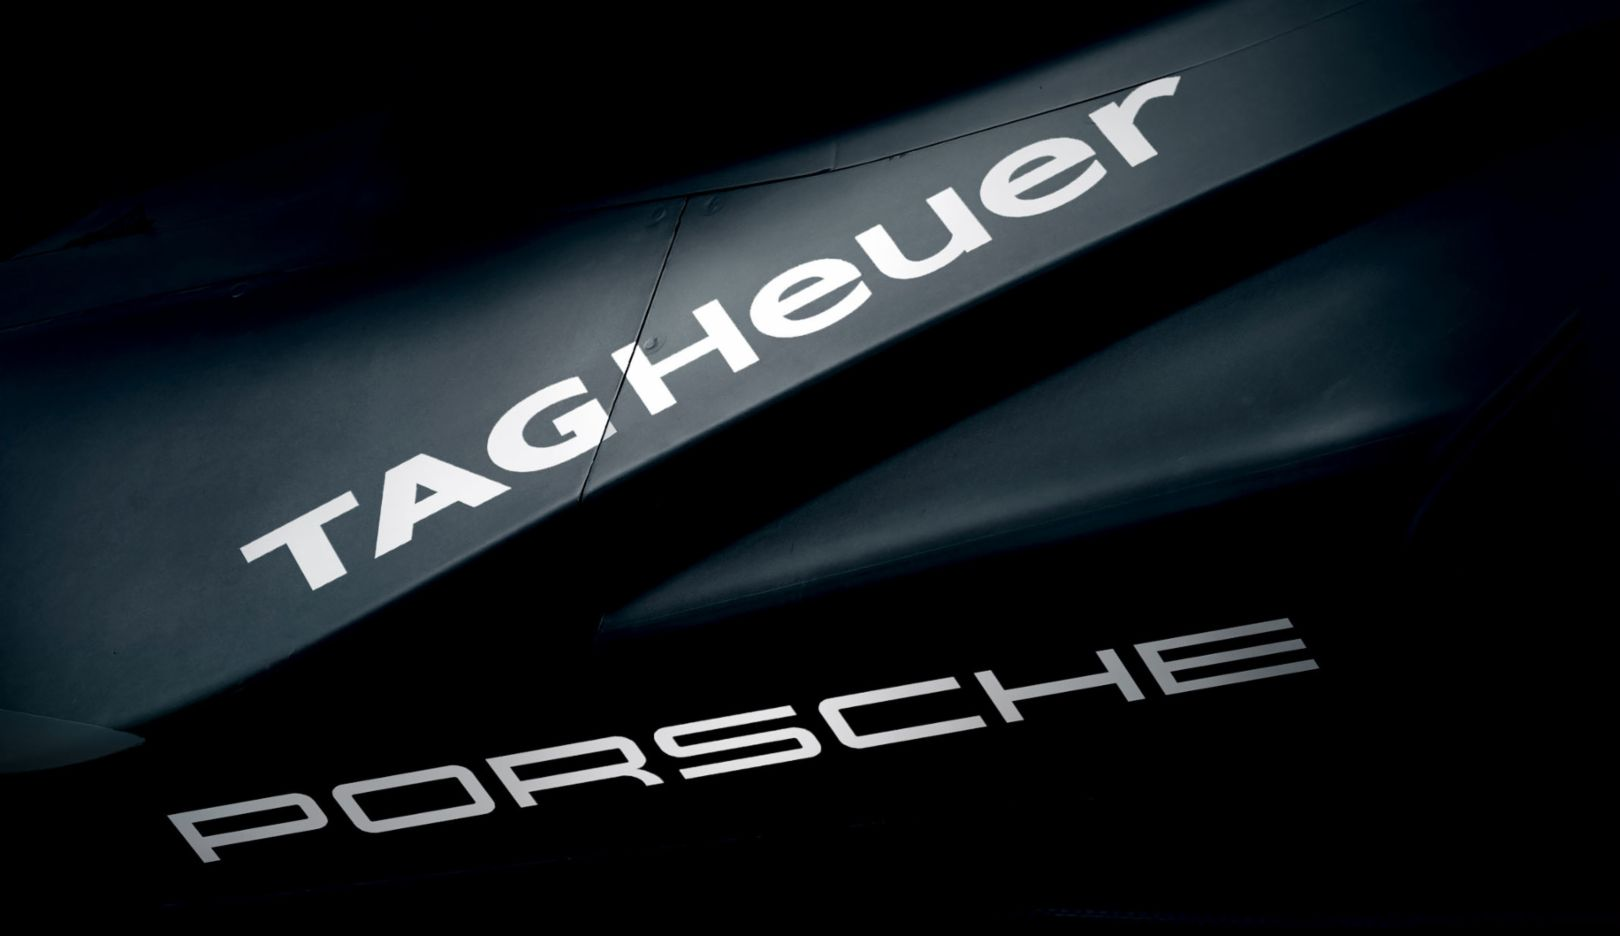 TAG Heuer and Porsche: Sneak peek on the Porsche Formula E car, 2019, Porsche AG